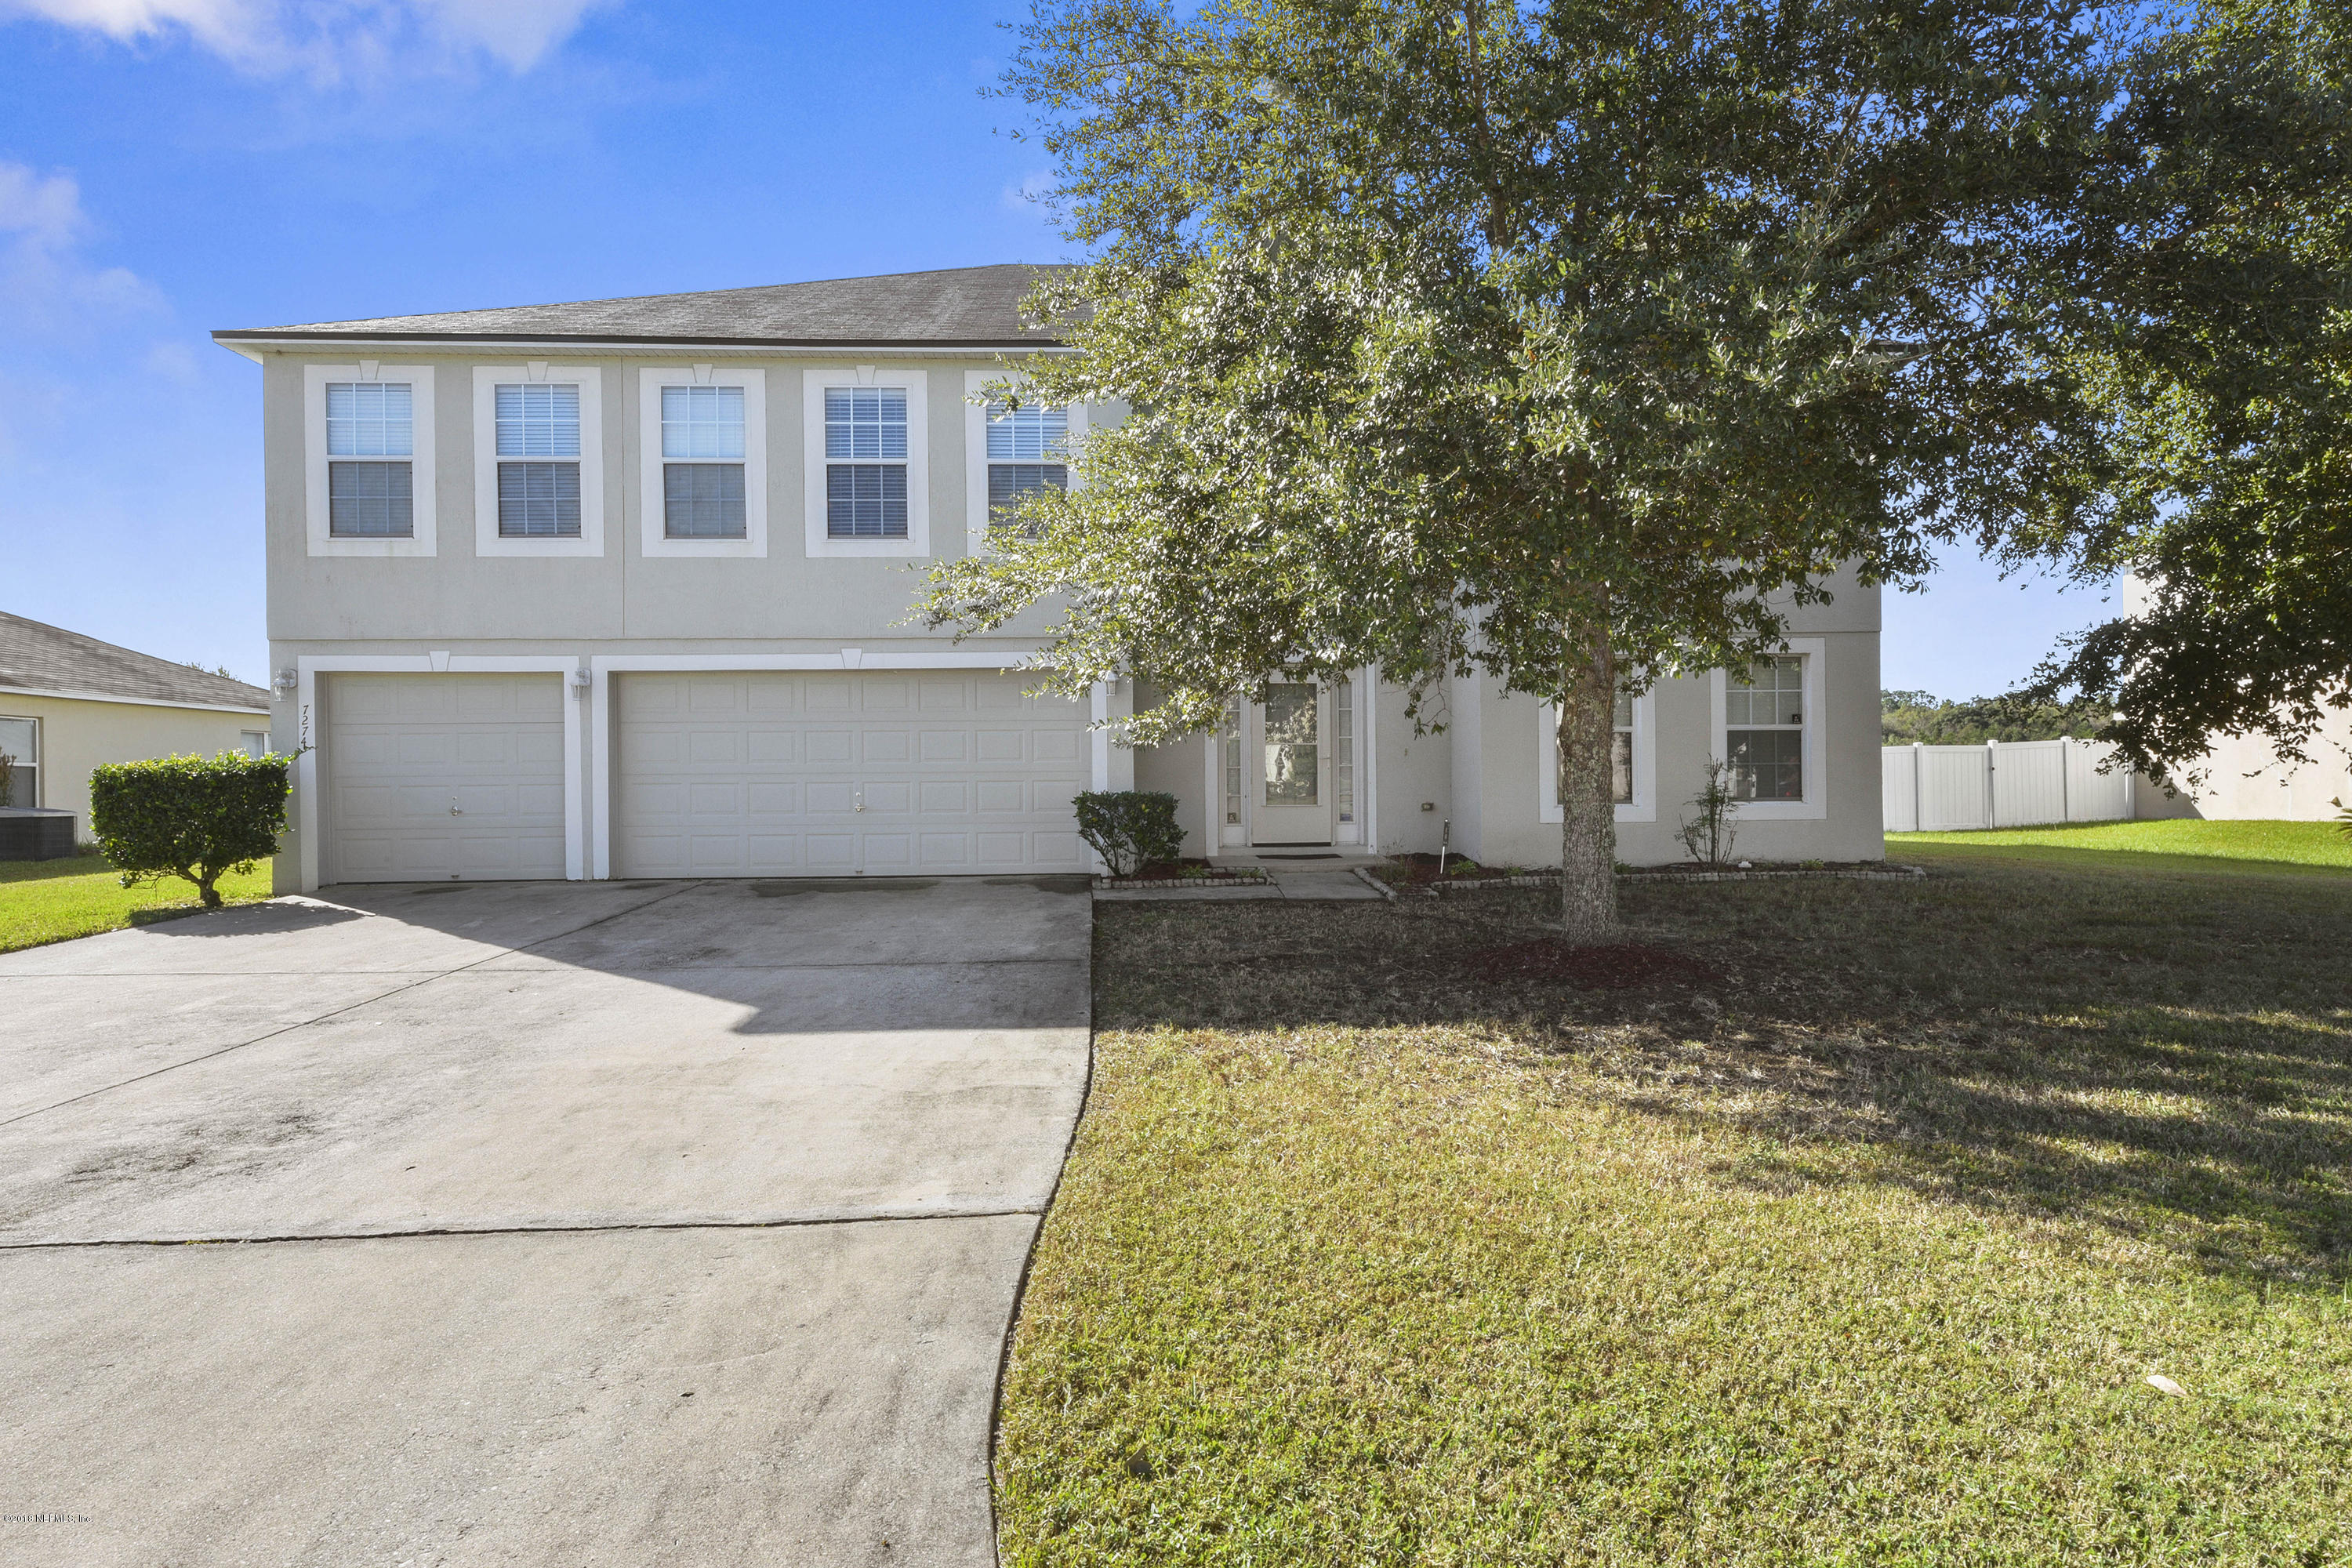 7274 NOTTINGHAMSHIRE, JACKSONVILLE, FLORIDA 32219, 6 Bedrooms Bedrooms, ,4 BathroomsBathrooms,Residential - single family,For sale,NOTTINGHAMSHIRE,965330